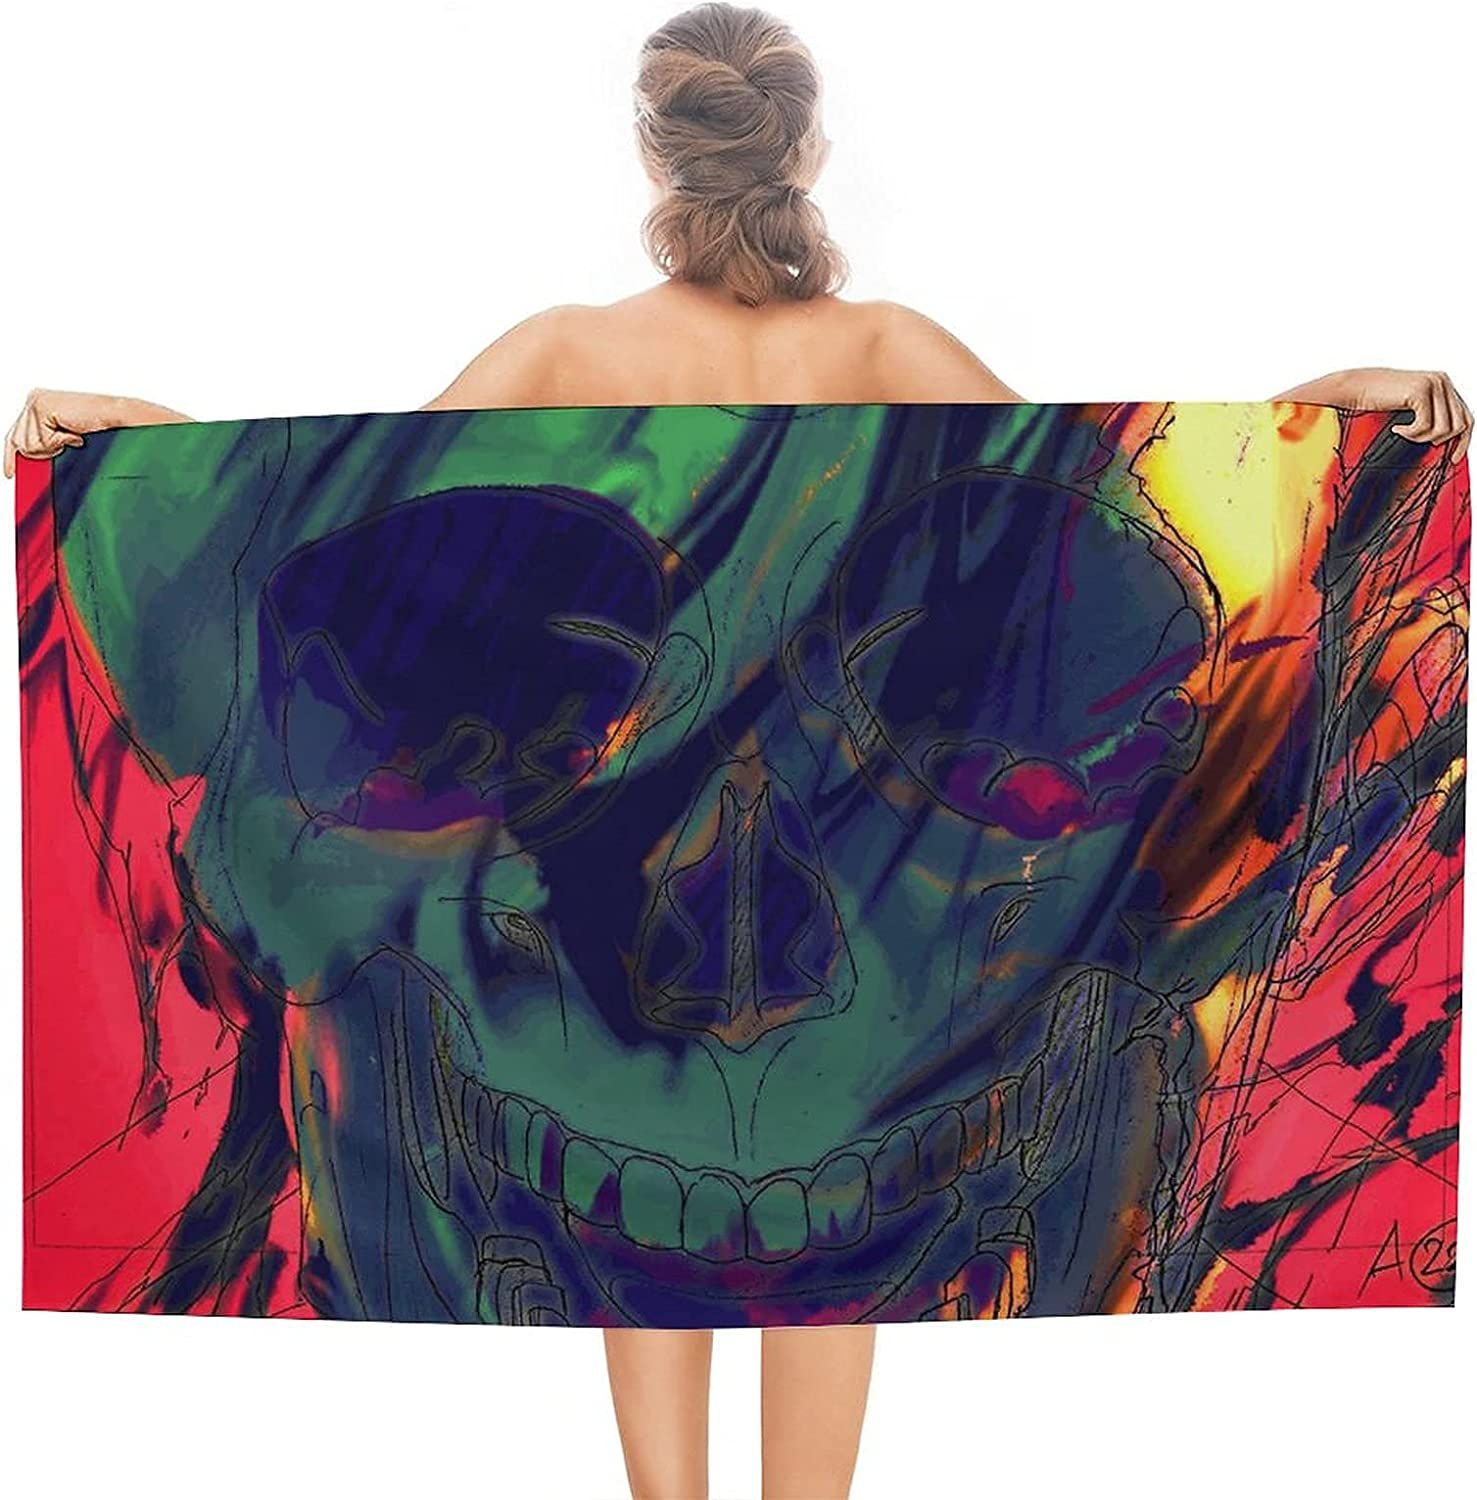 Watercolor Skull Limited time cheap sale Ranking TOP18 Beach Themed Towel Bab Superfine Dry Fiber Fast